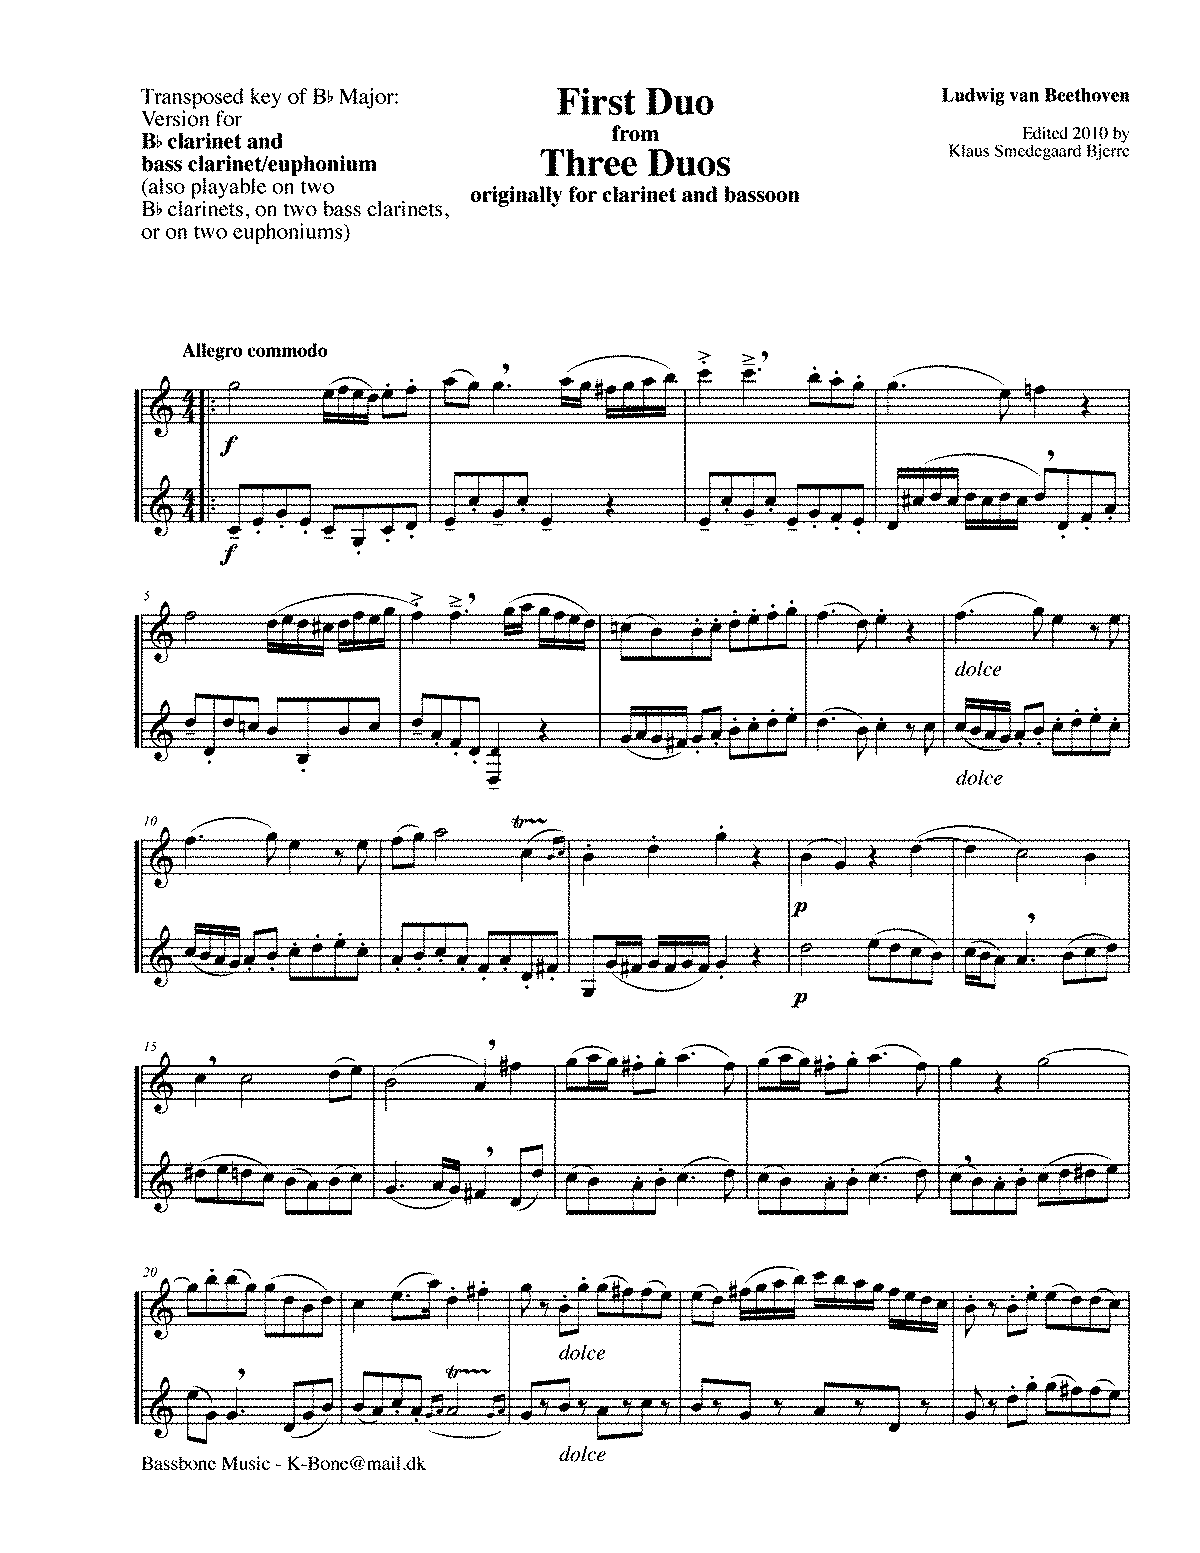 WIMA.a3b2-Beethoven-Duet-1-Bb-major-for-Bb-clarinet&bass-clar-euph.pdf